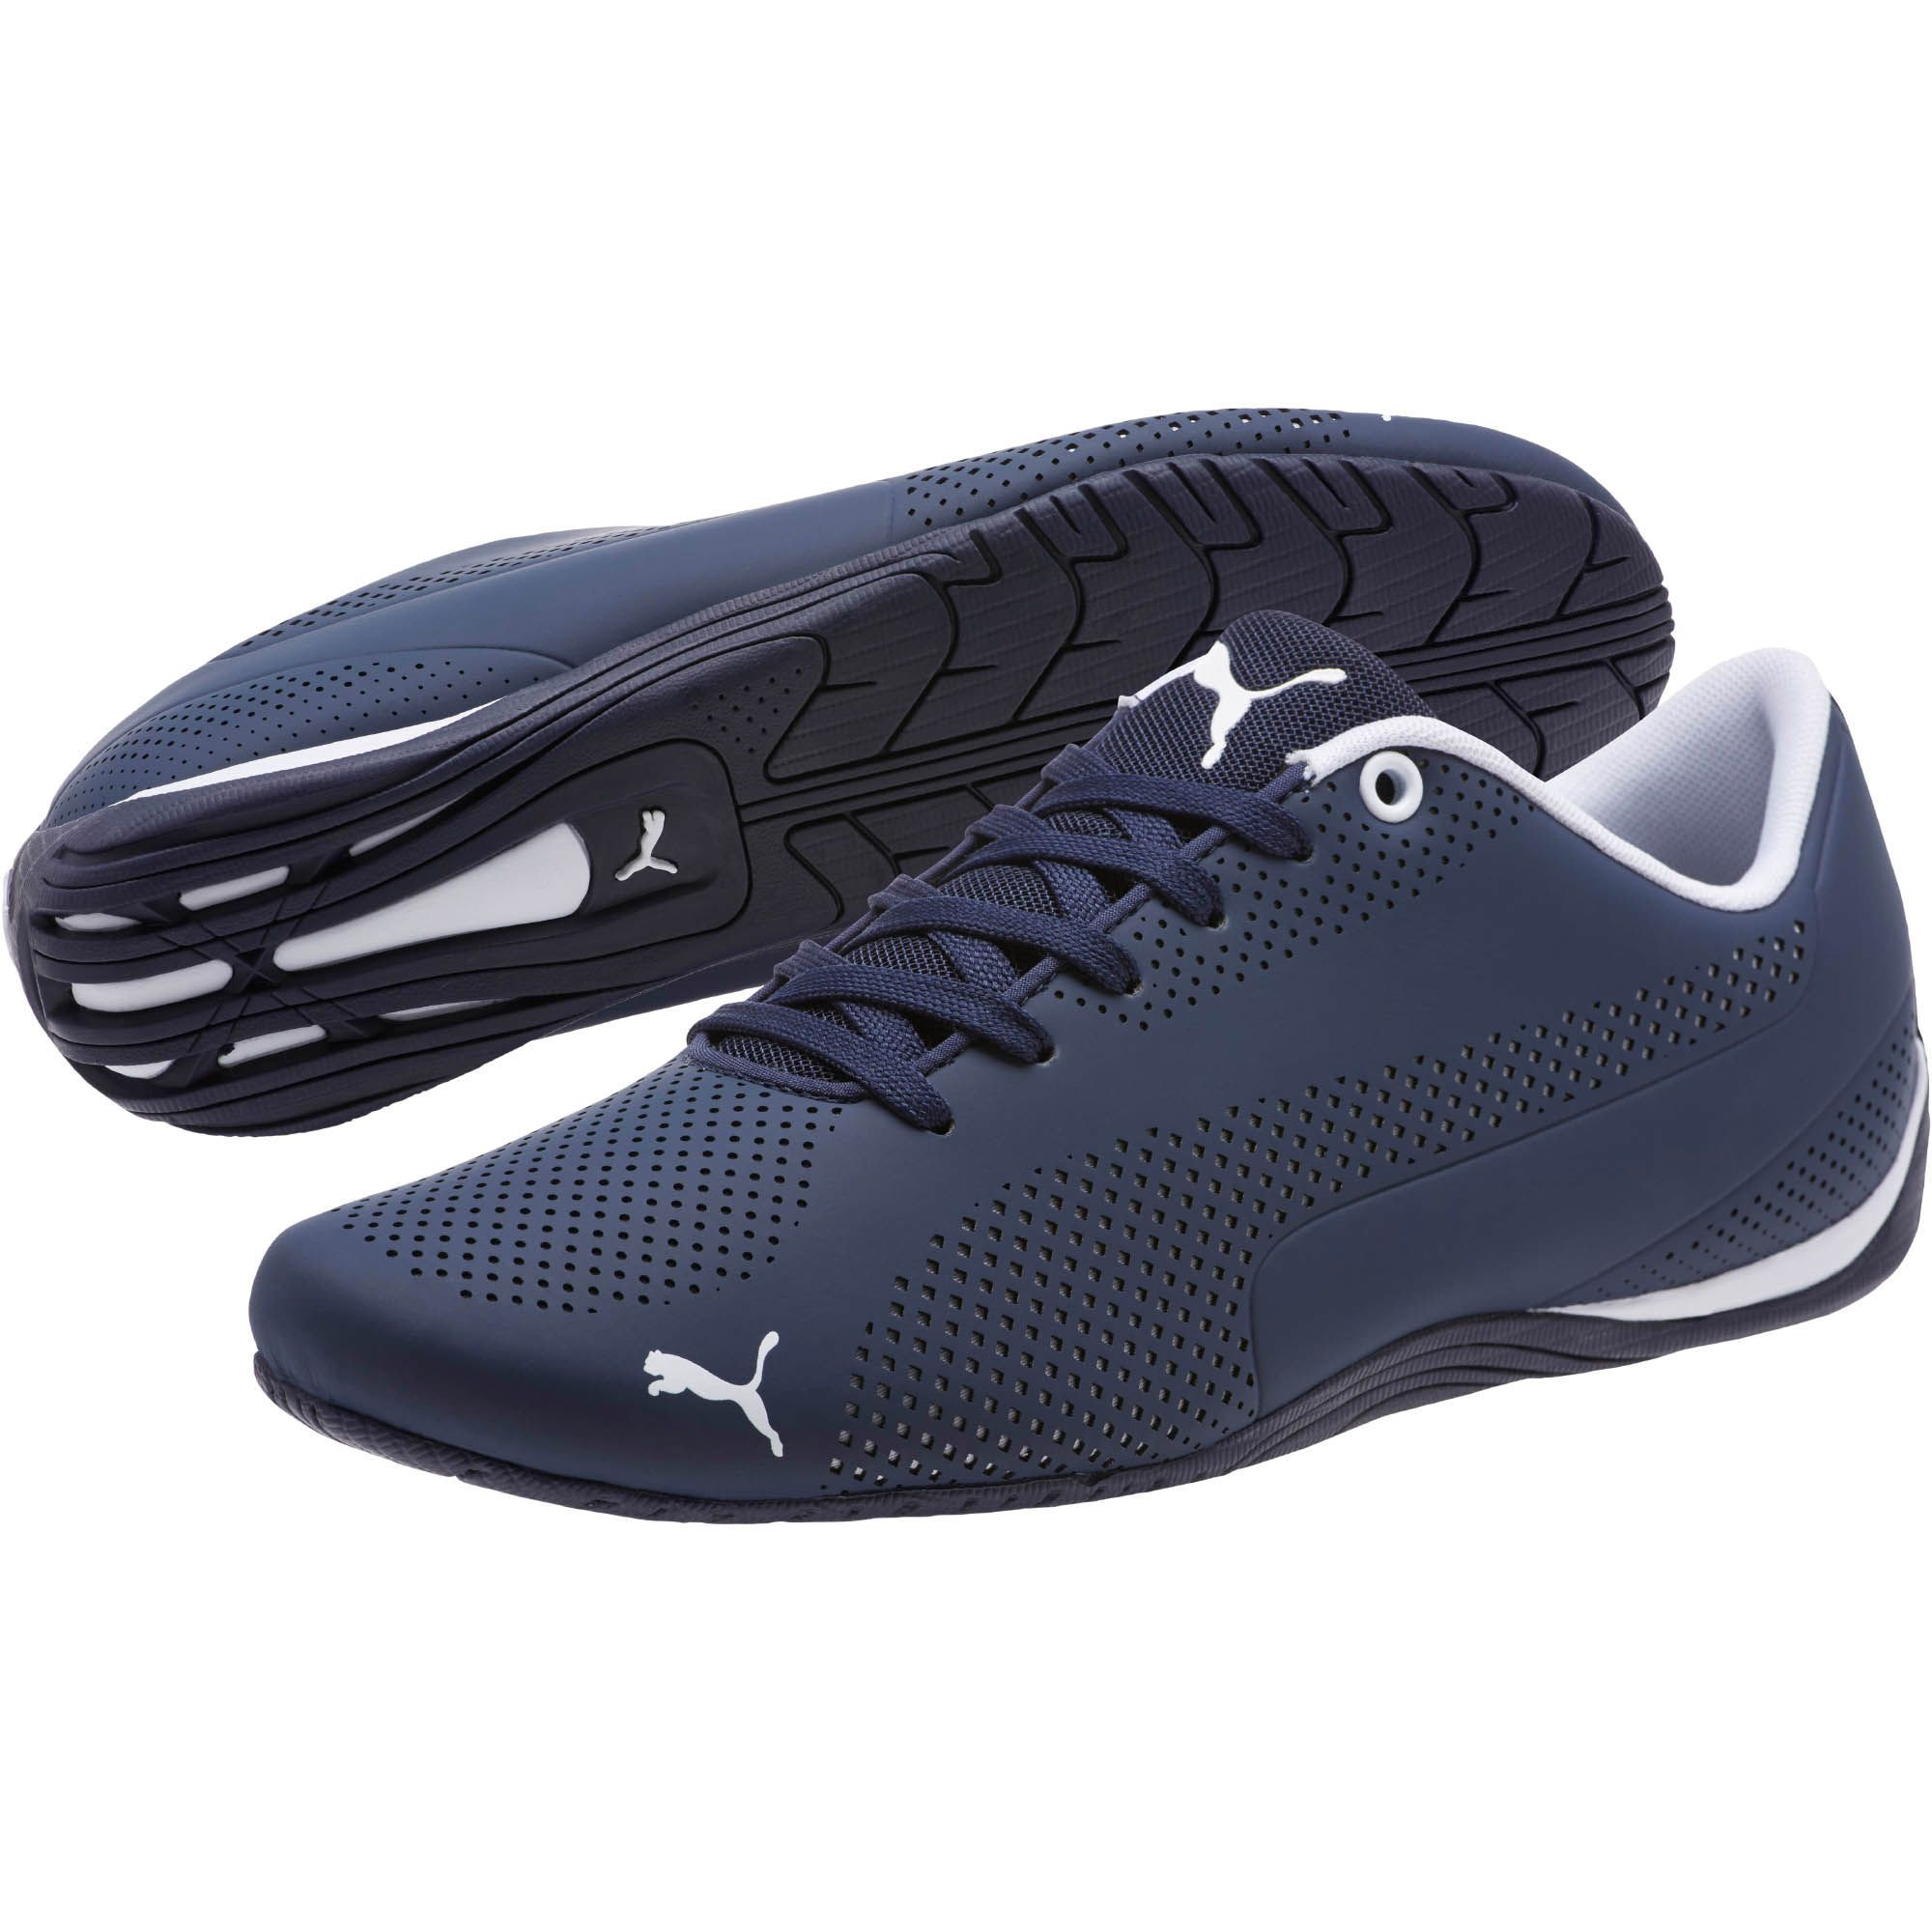 44 99 Usd Puma Drift Cat 5 Ultra Men S Shoes Our Drift Cat Shoe Hasn T Changed Much Over The Years It Ha Sport Shoes Men Mens Puma Shoes Mens Casual Shoes